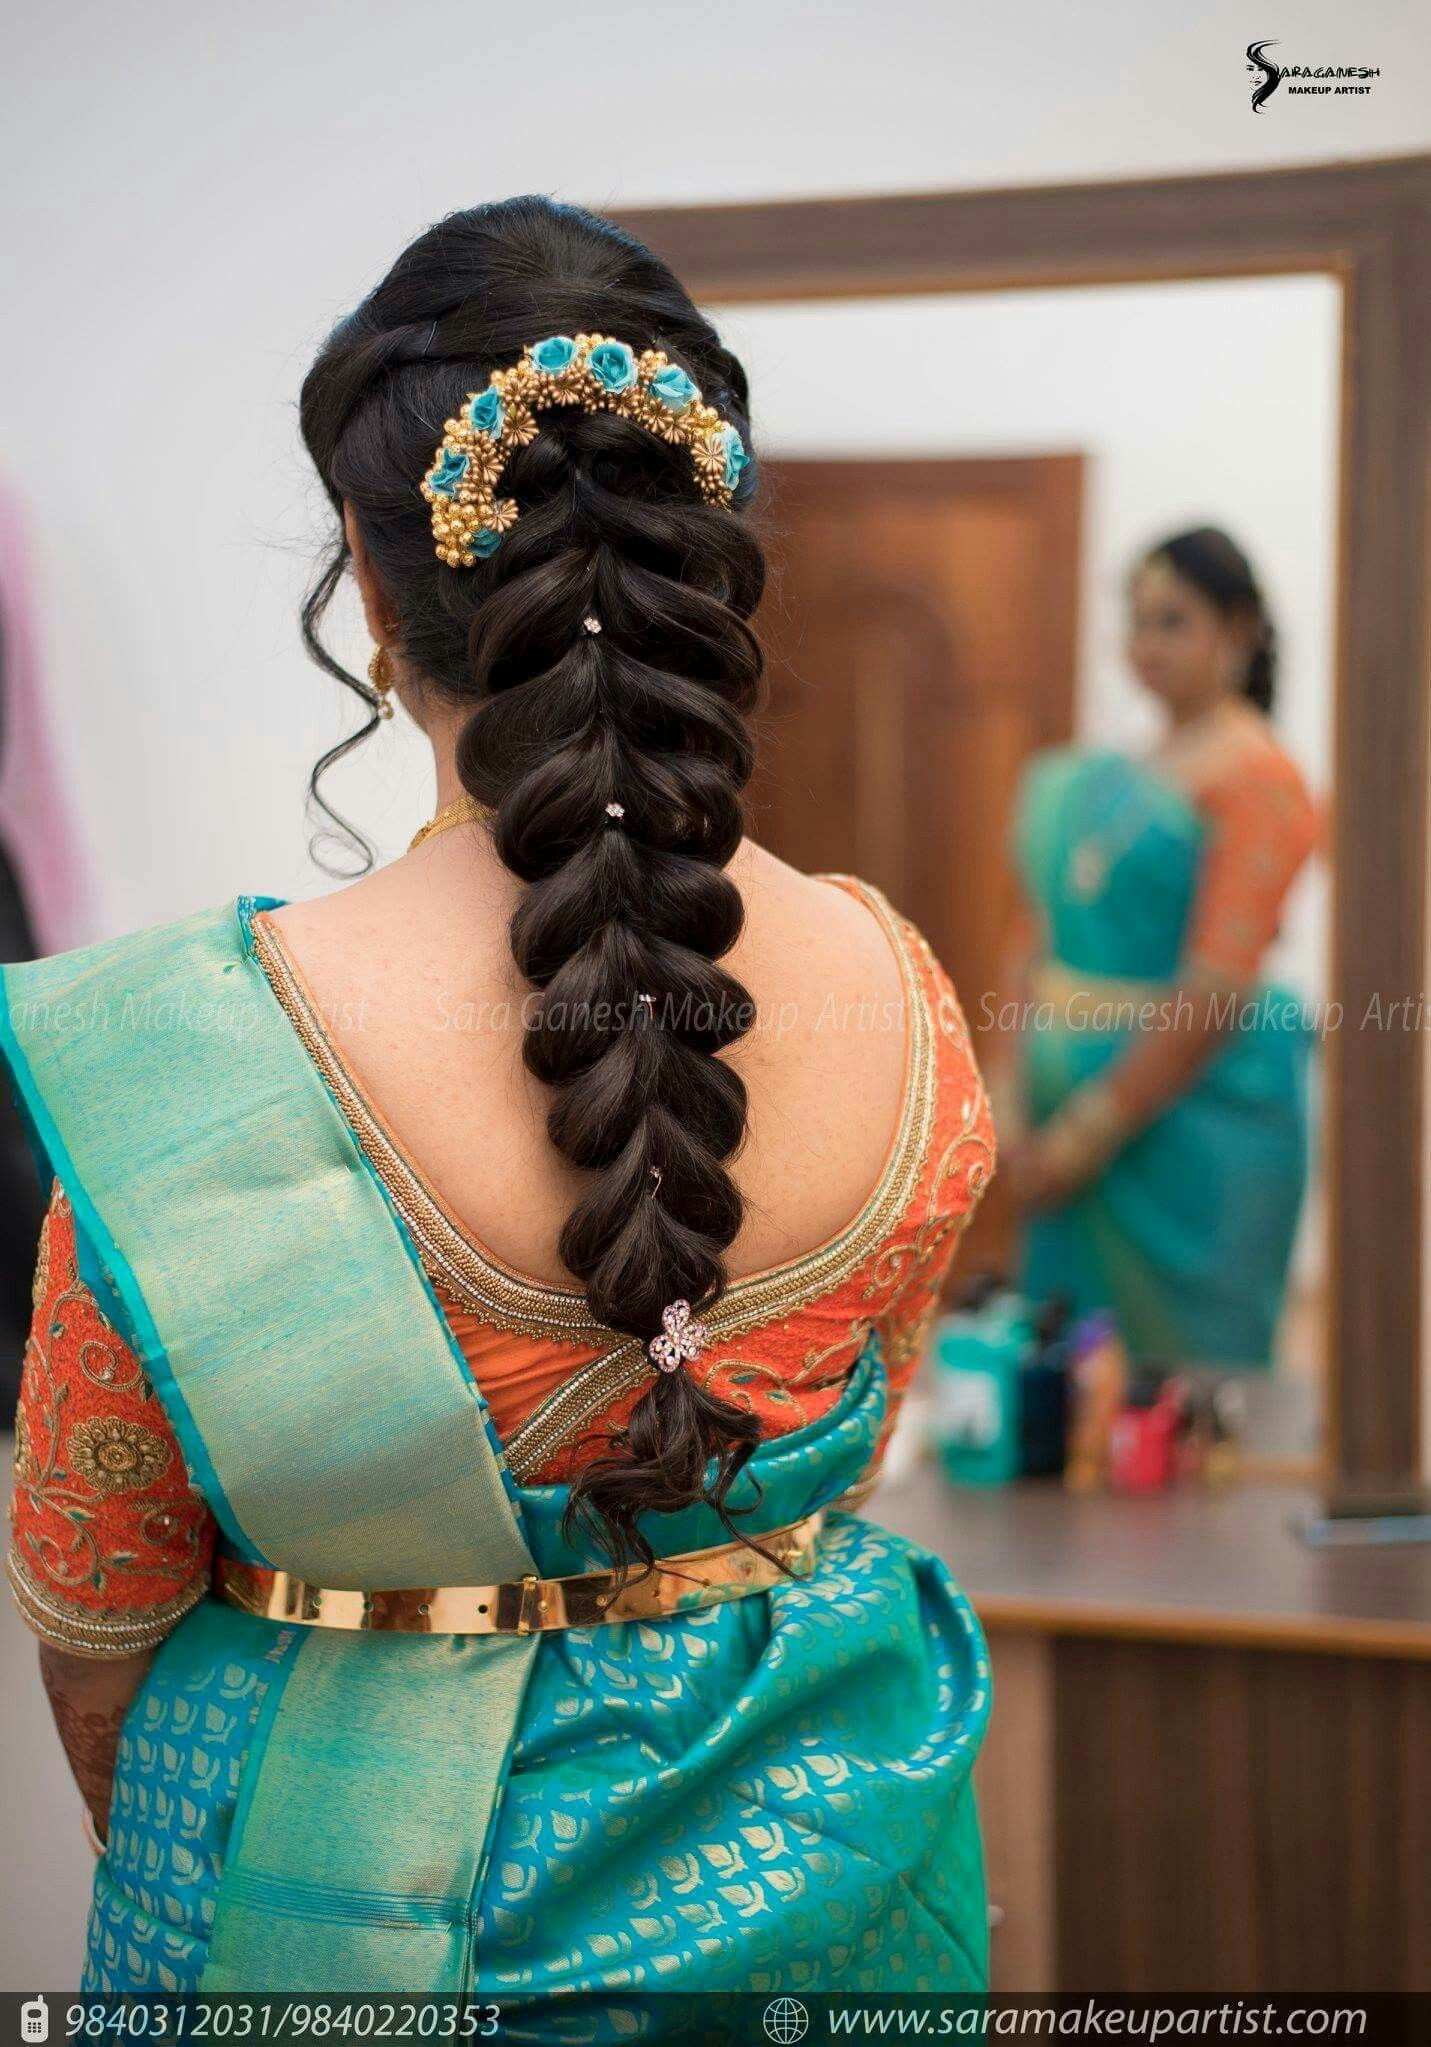 Hair Do | Hair Do | Indian Wedding Hairstyles, Wedding in South Indian Bridal Hairstyle For Long Hair